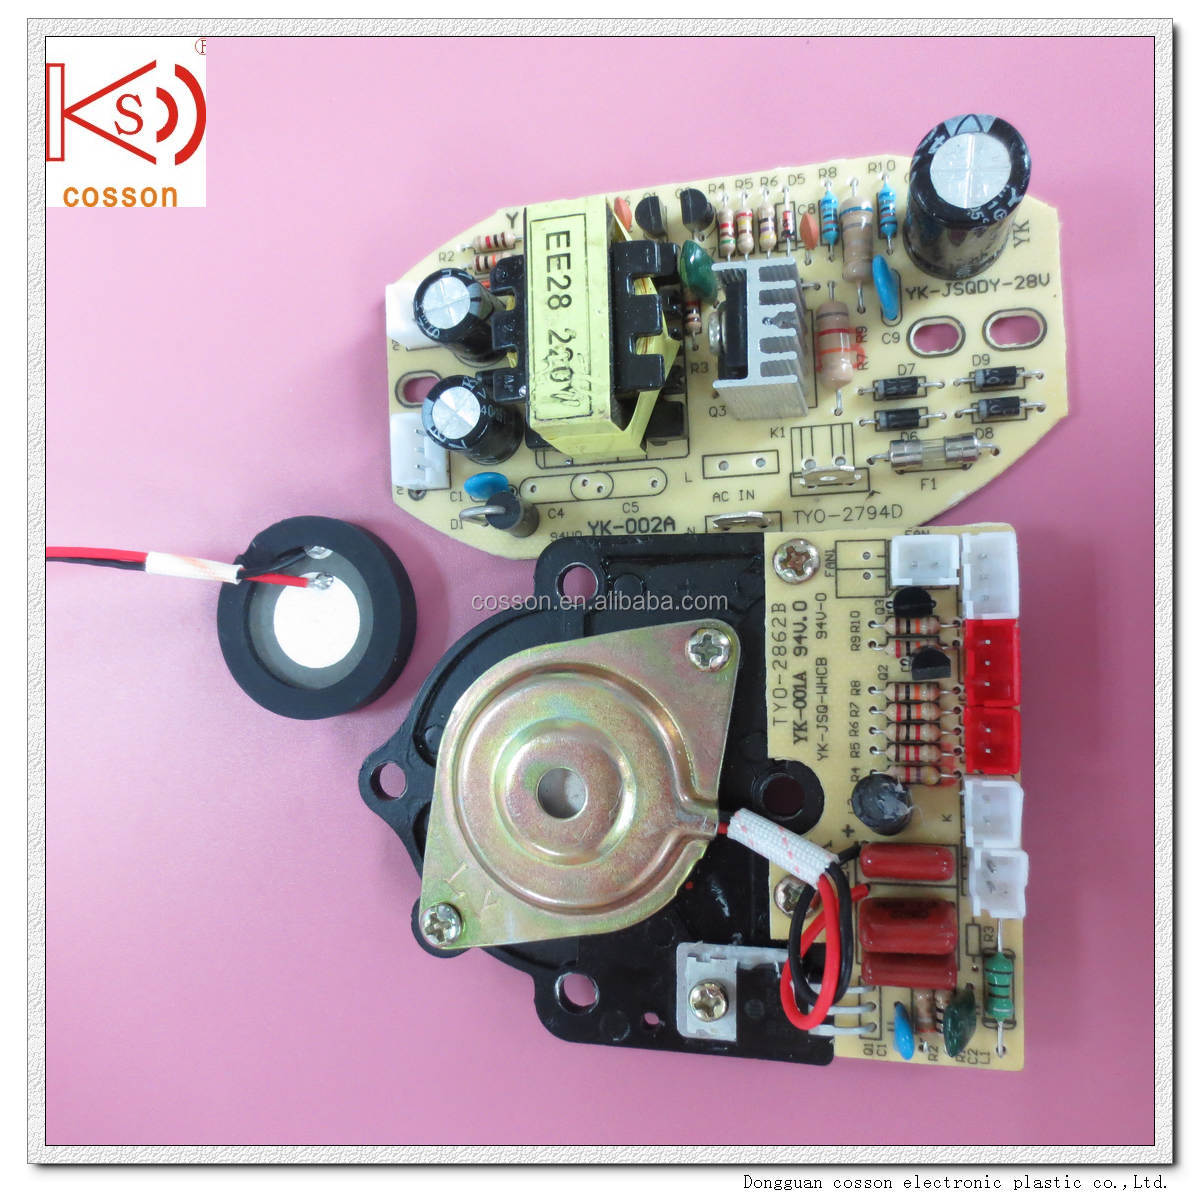 Circuit Board For Humidifier Buy Converter Pcb Ultrasonic Sensor Humidifiercircuit Humidifierboard Product On